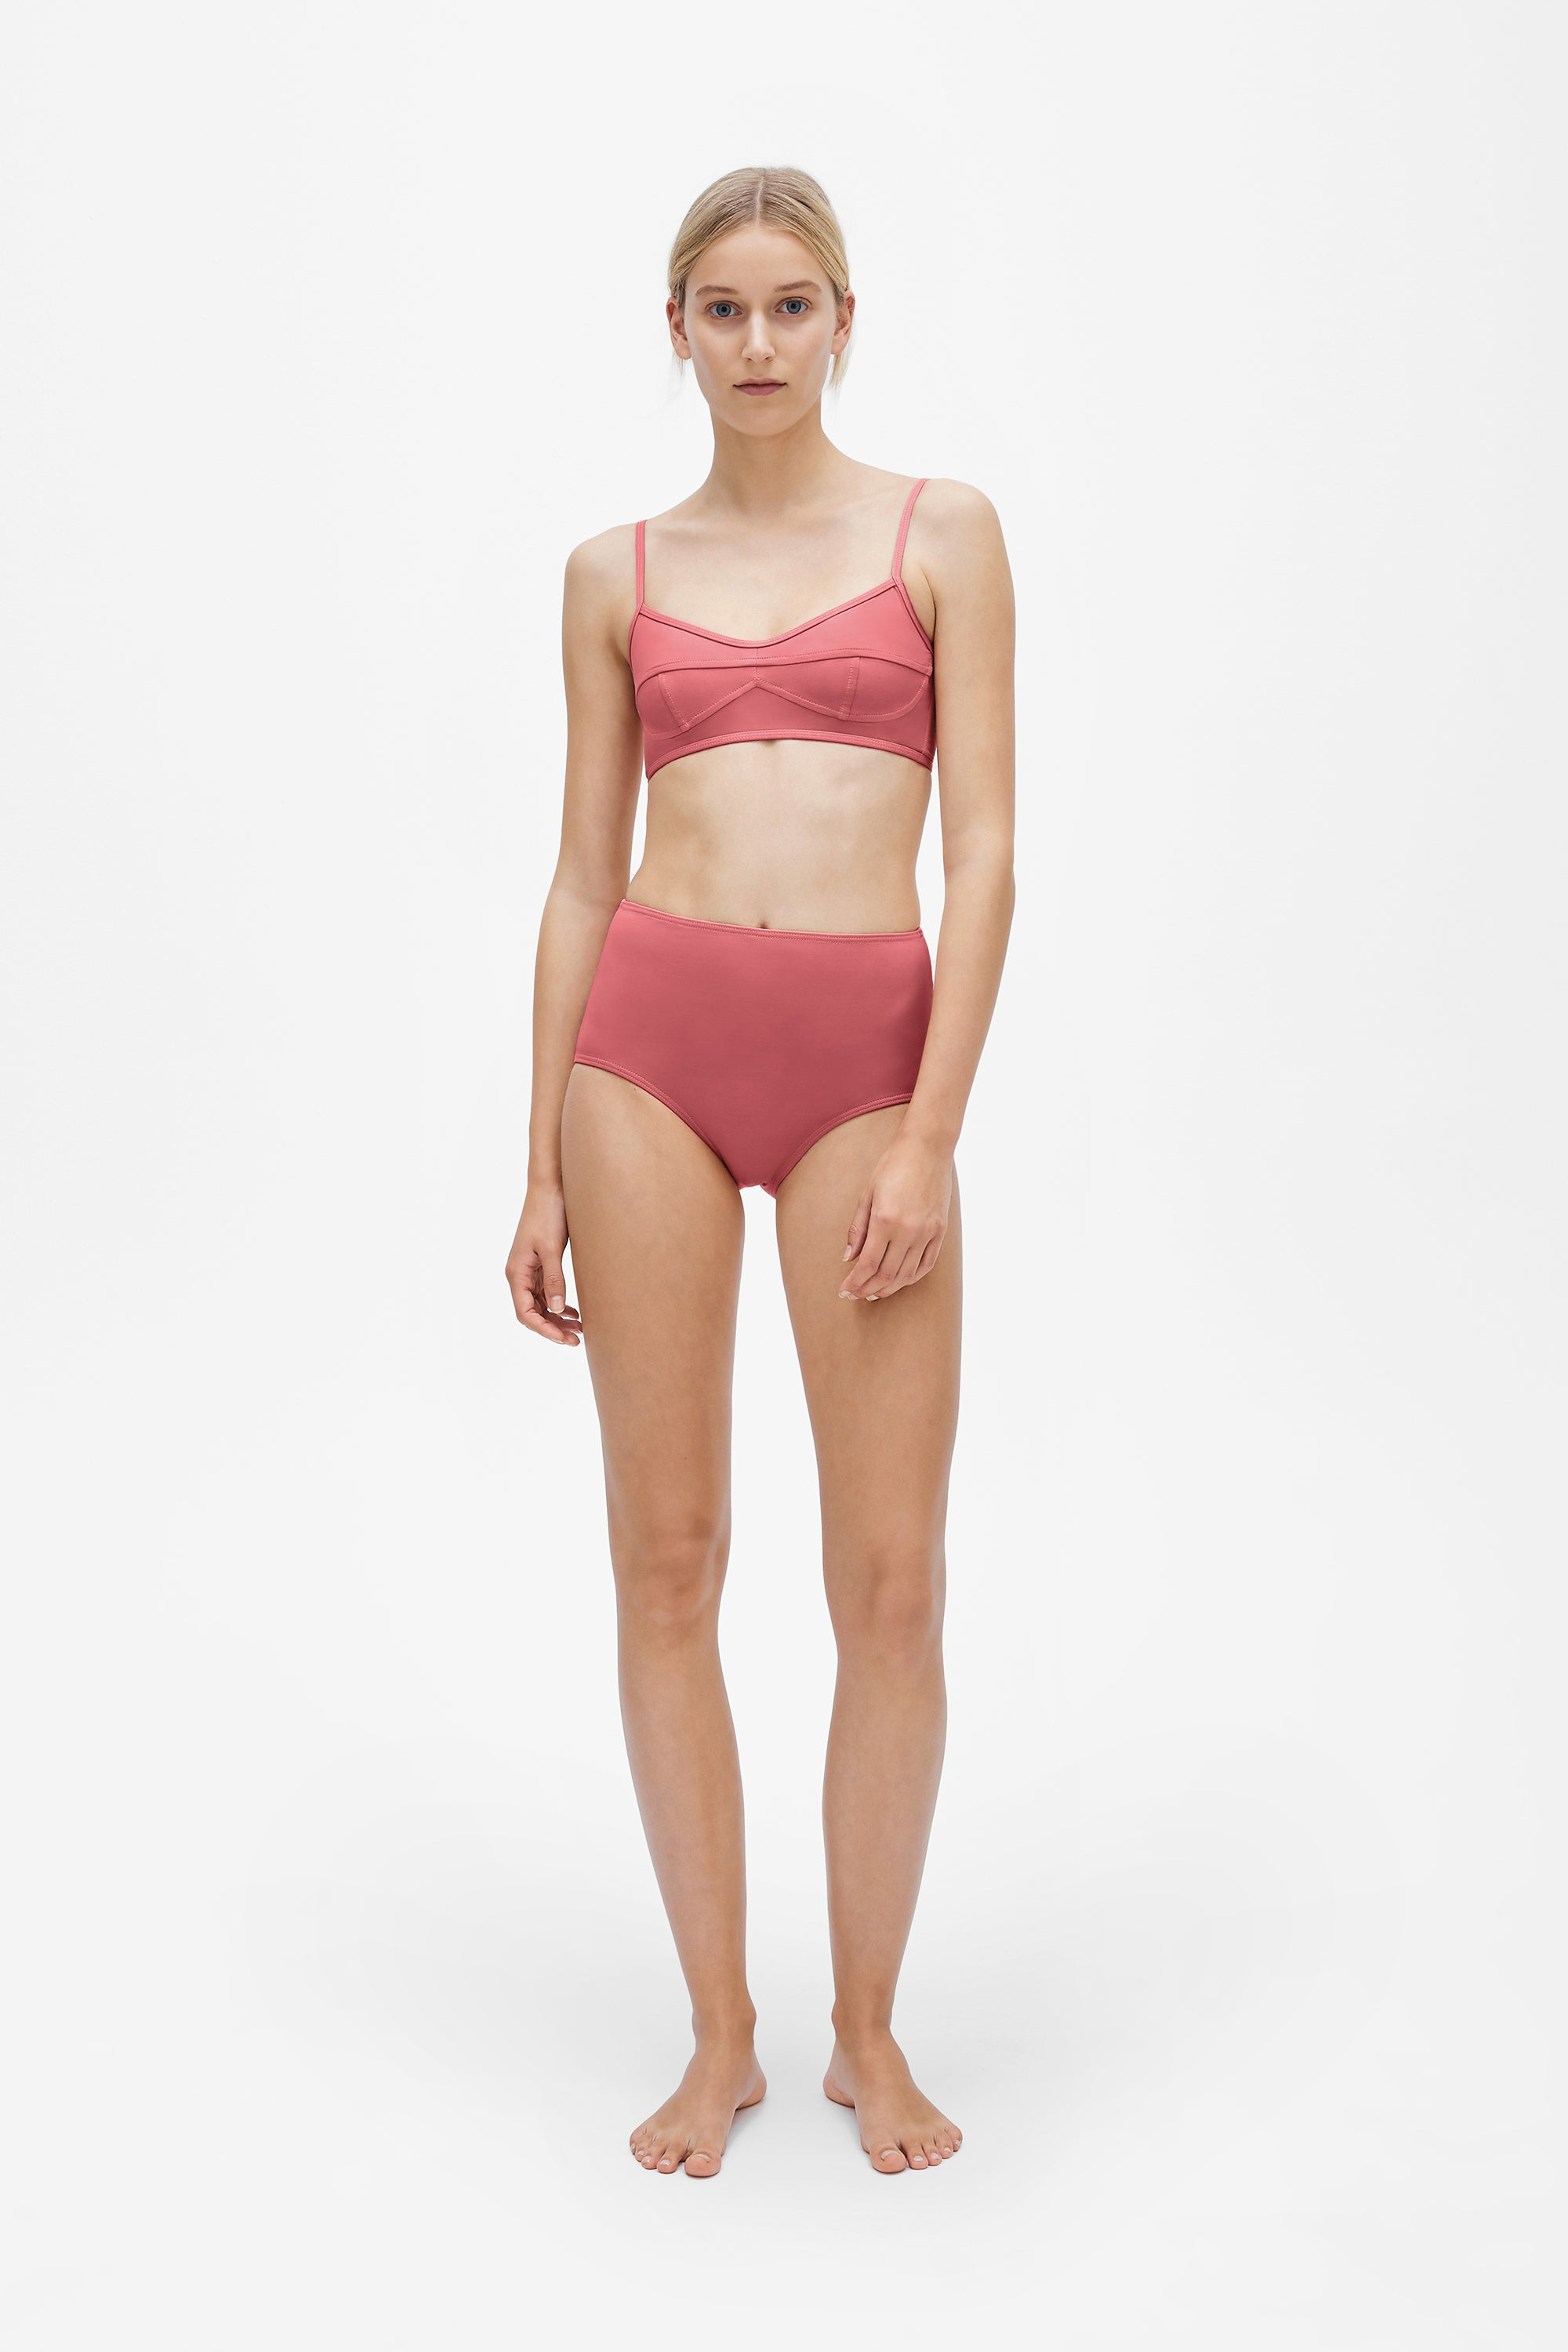 Suzi two-piece set - Dusted pink - Swim two piece - Her Line